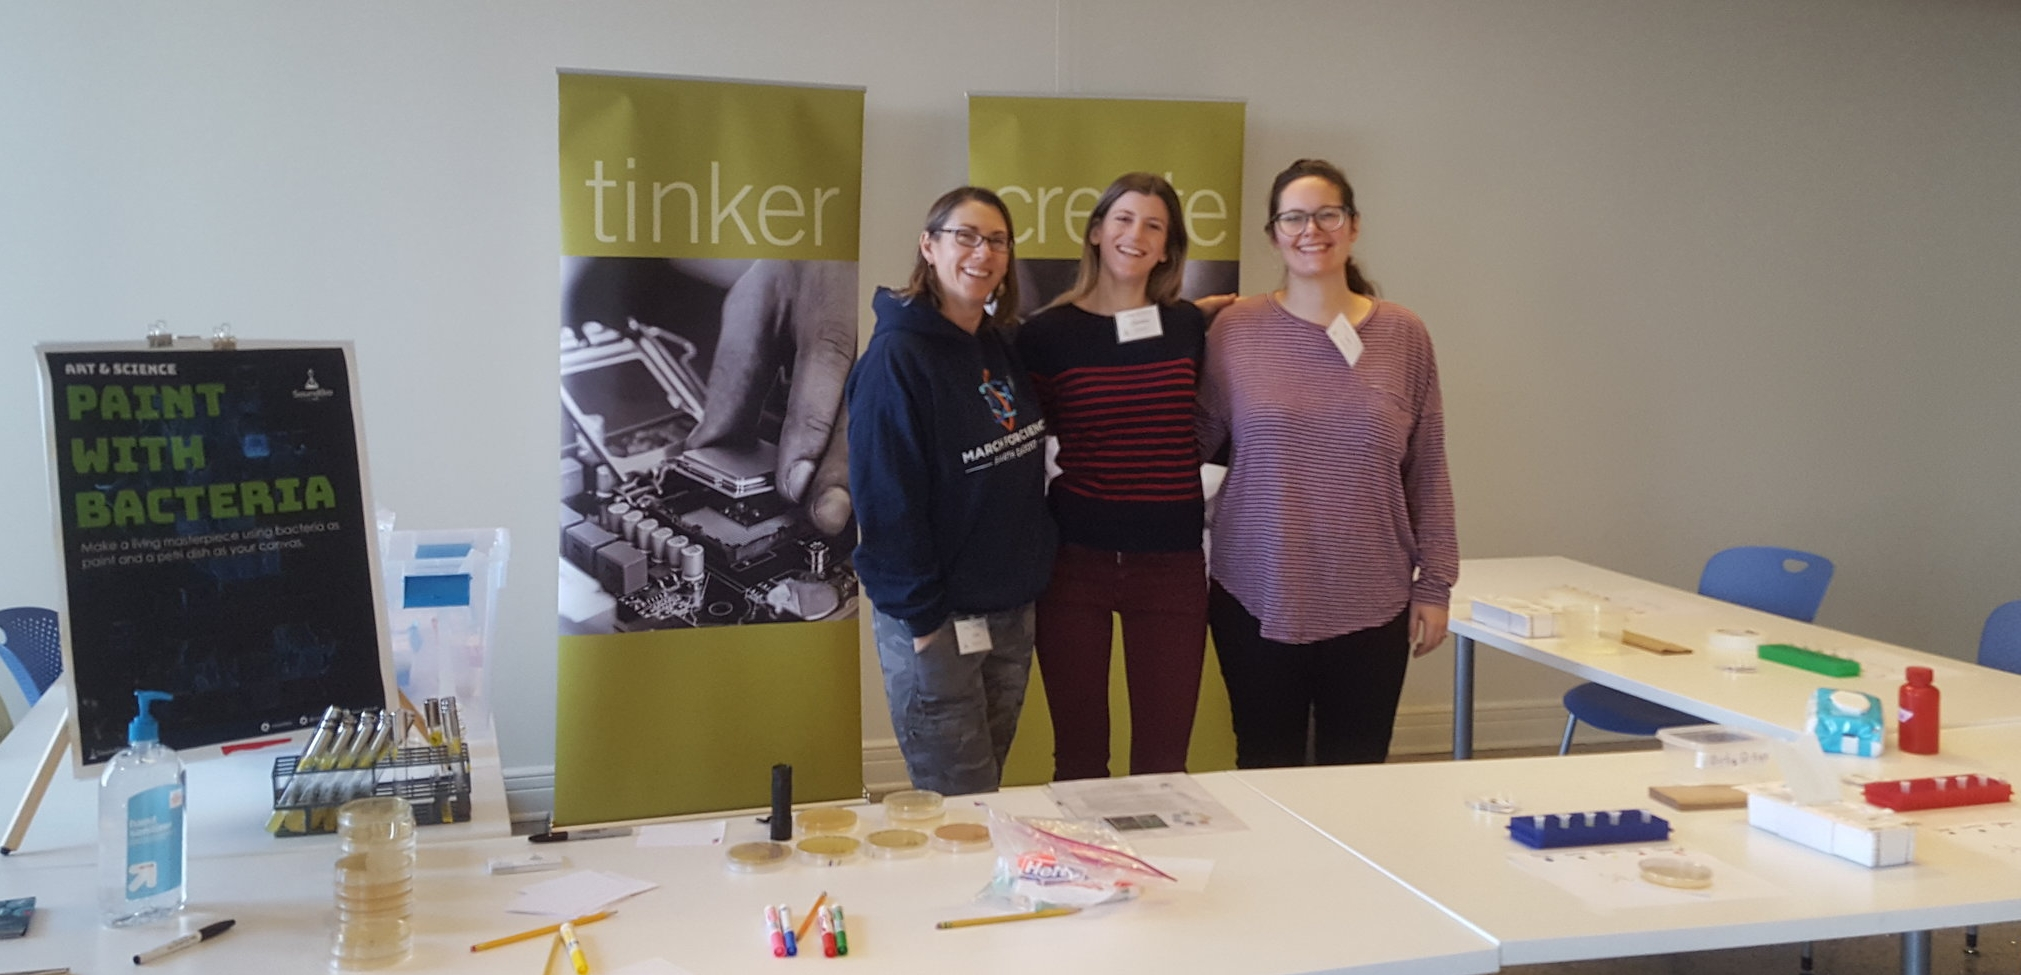 Our SoundBio Lab volunteers (L to R): Holly Sawyer, Christiana Doulami, and Taylor Wang